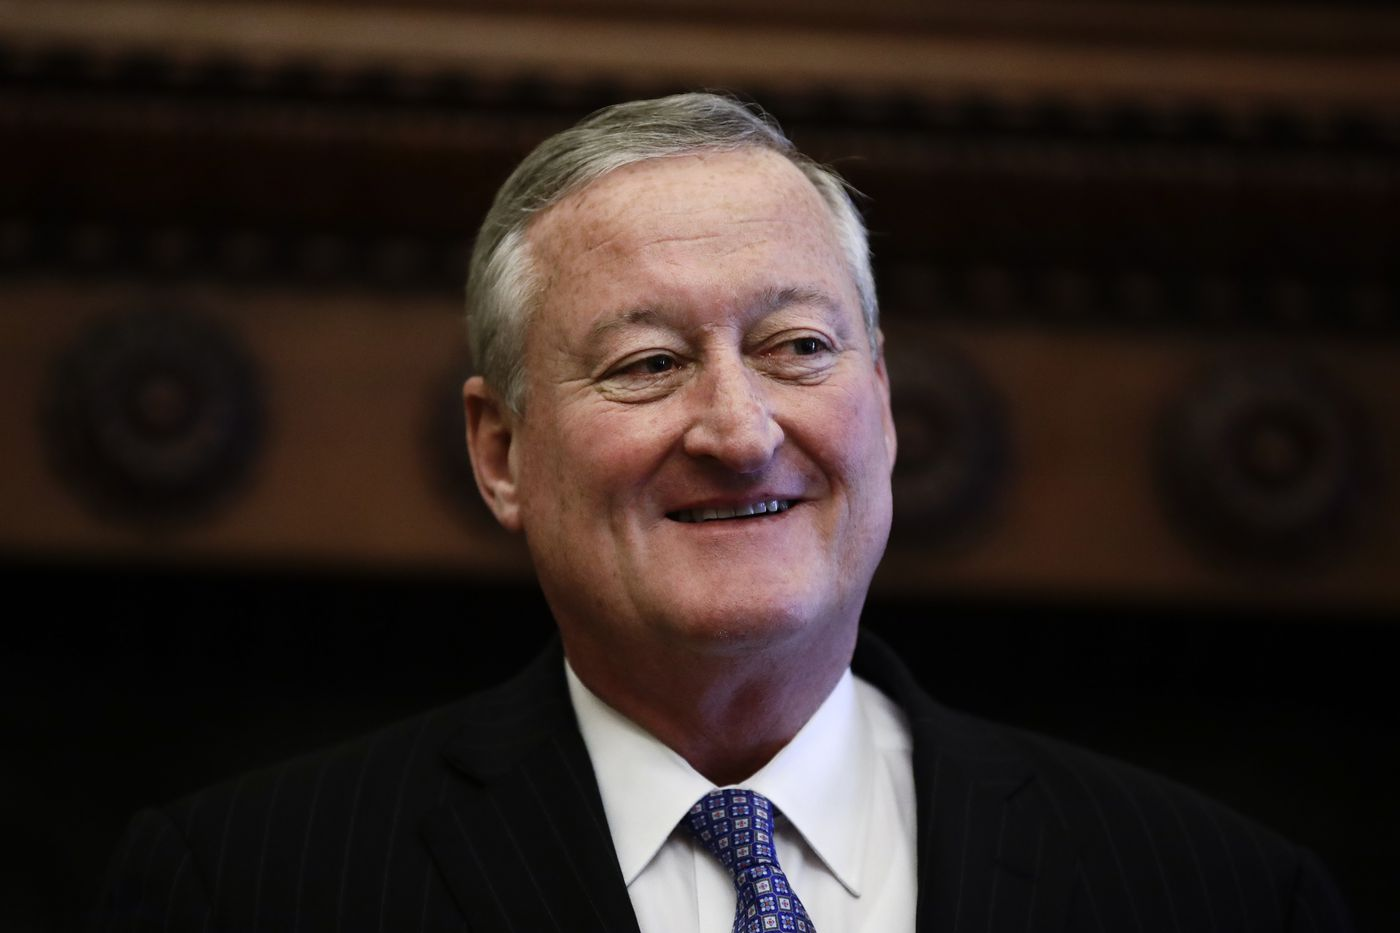 Mayor Kenney's proposed minimum wage increase could mean maximum damage   Opinion